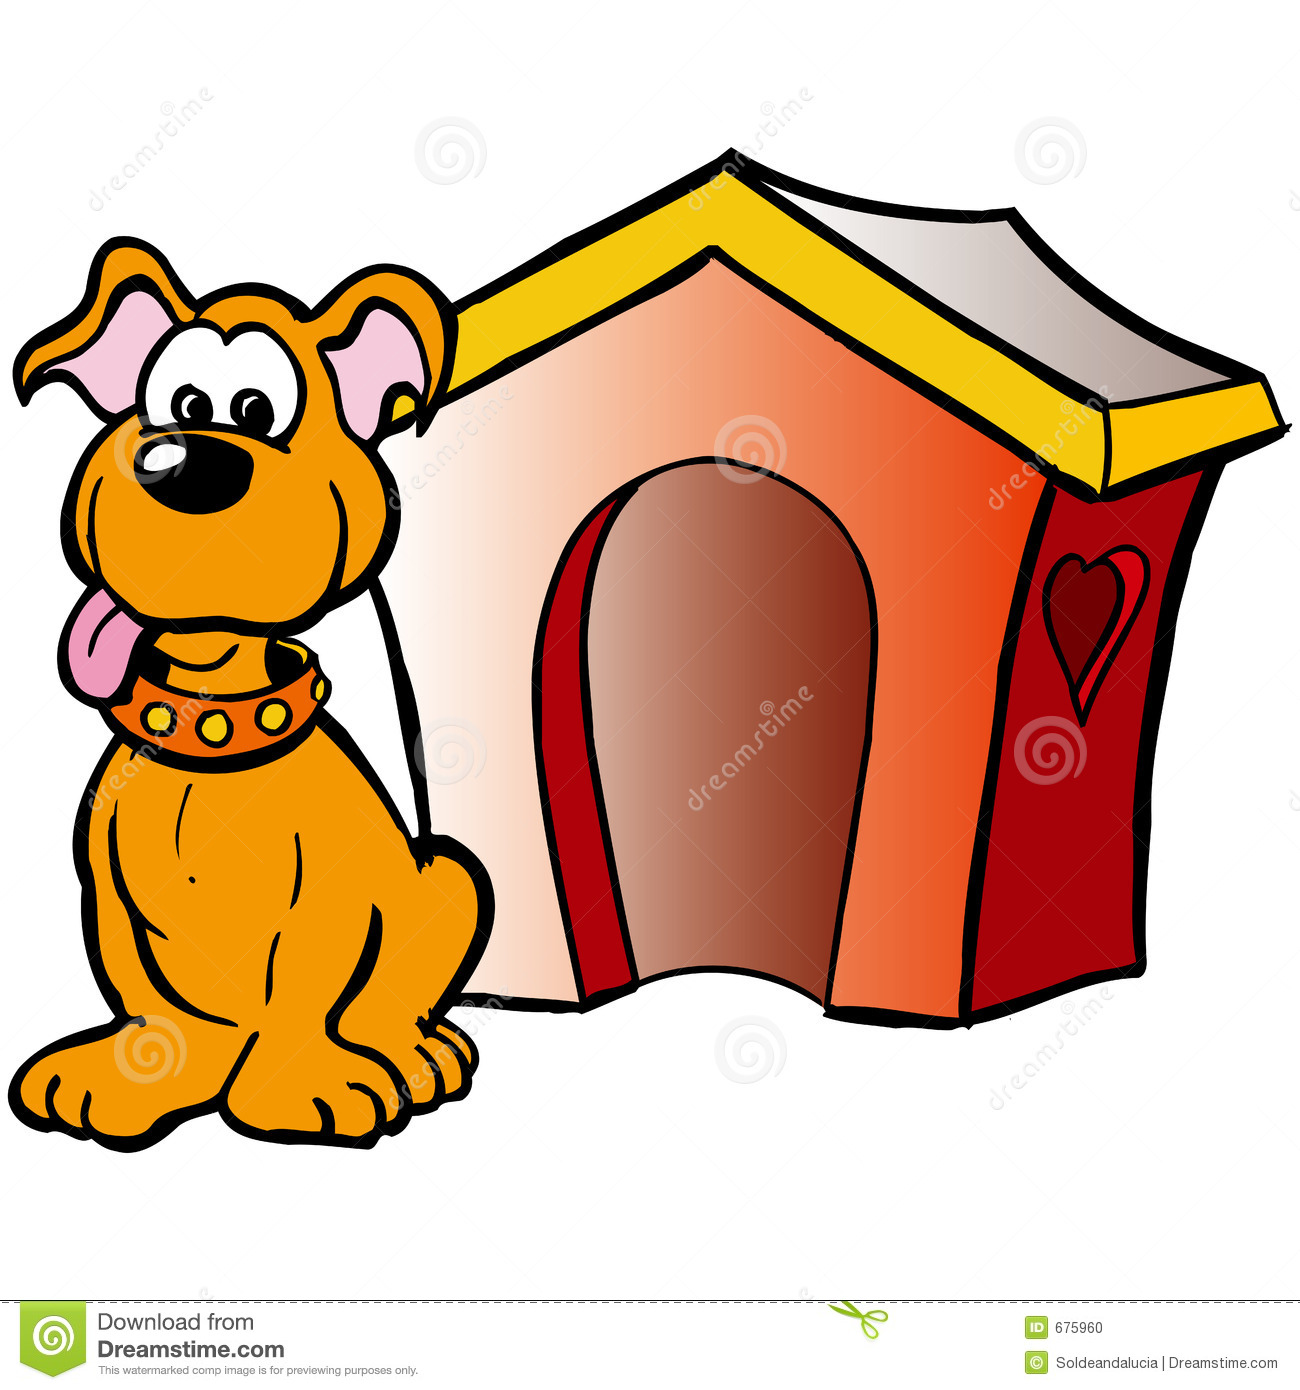 Illustration of a funny dog in front of his house.